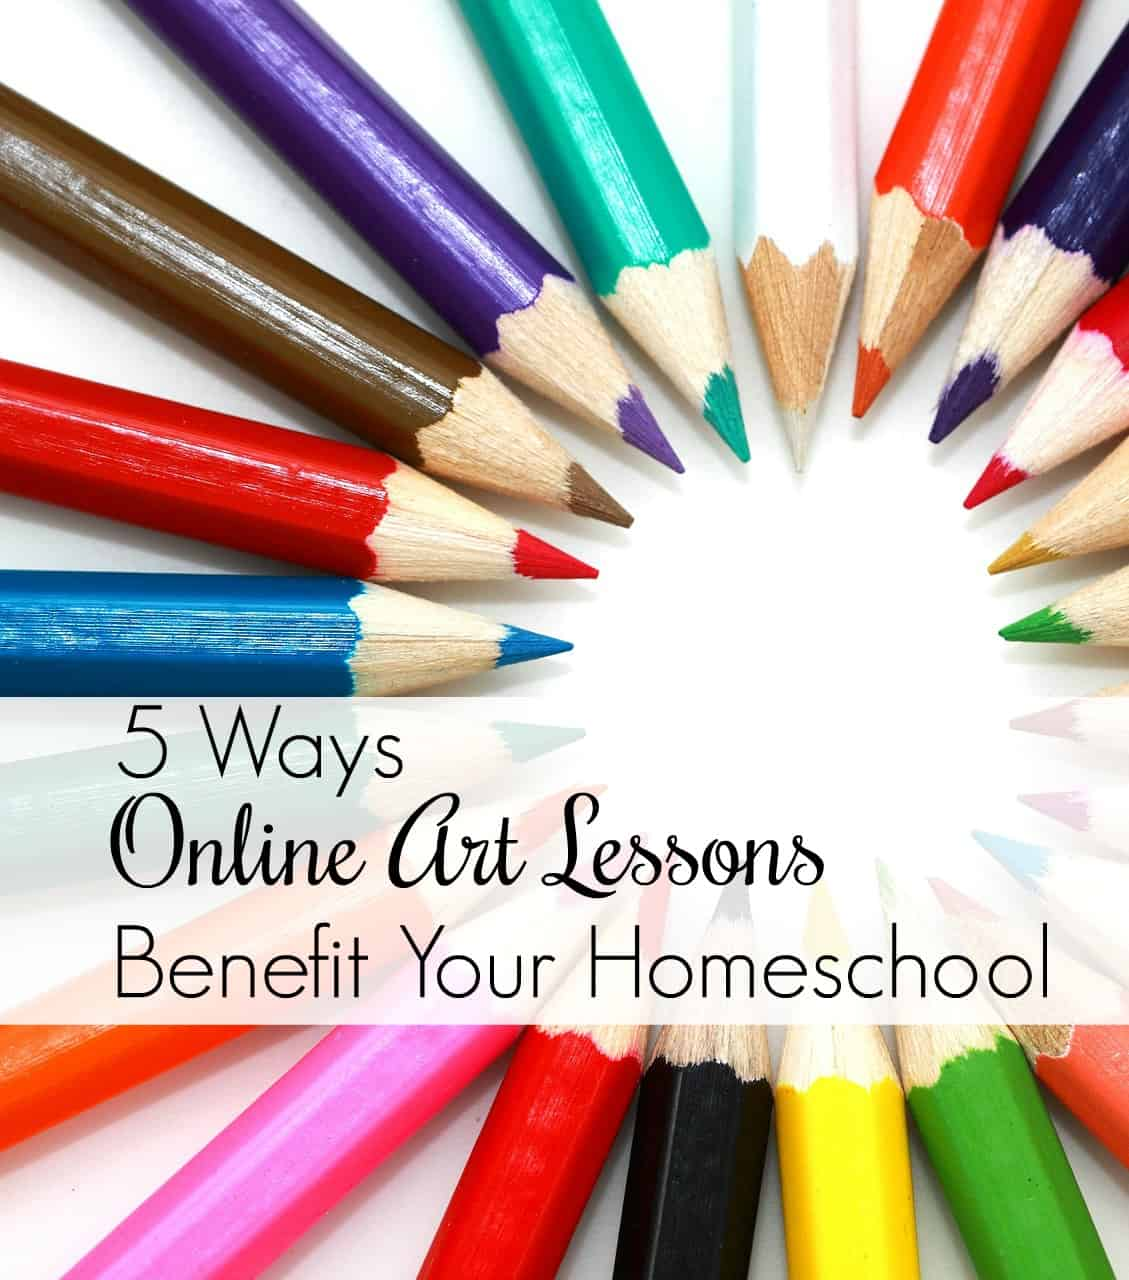 5 Ways Online Art Lessons Benefit Your Homeschool